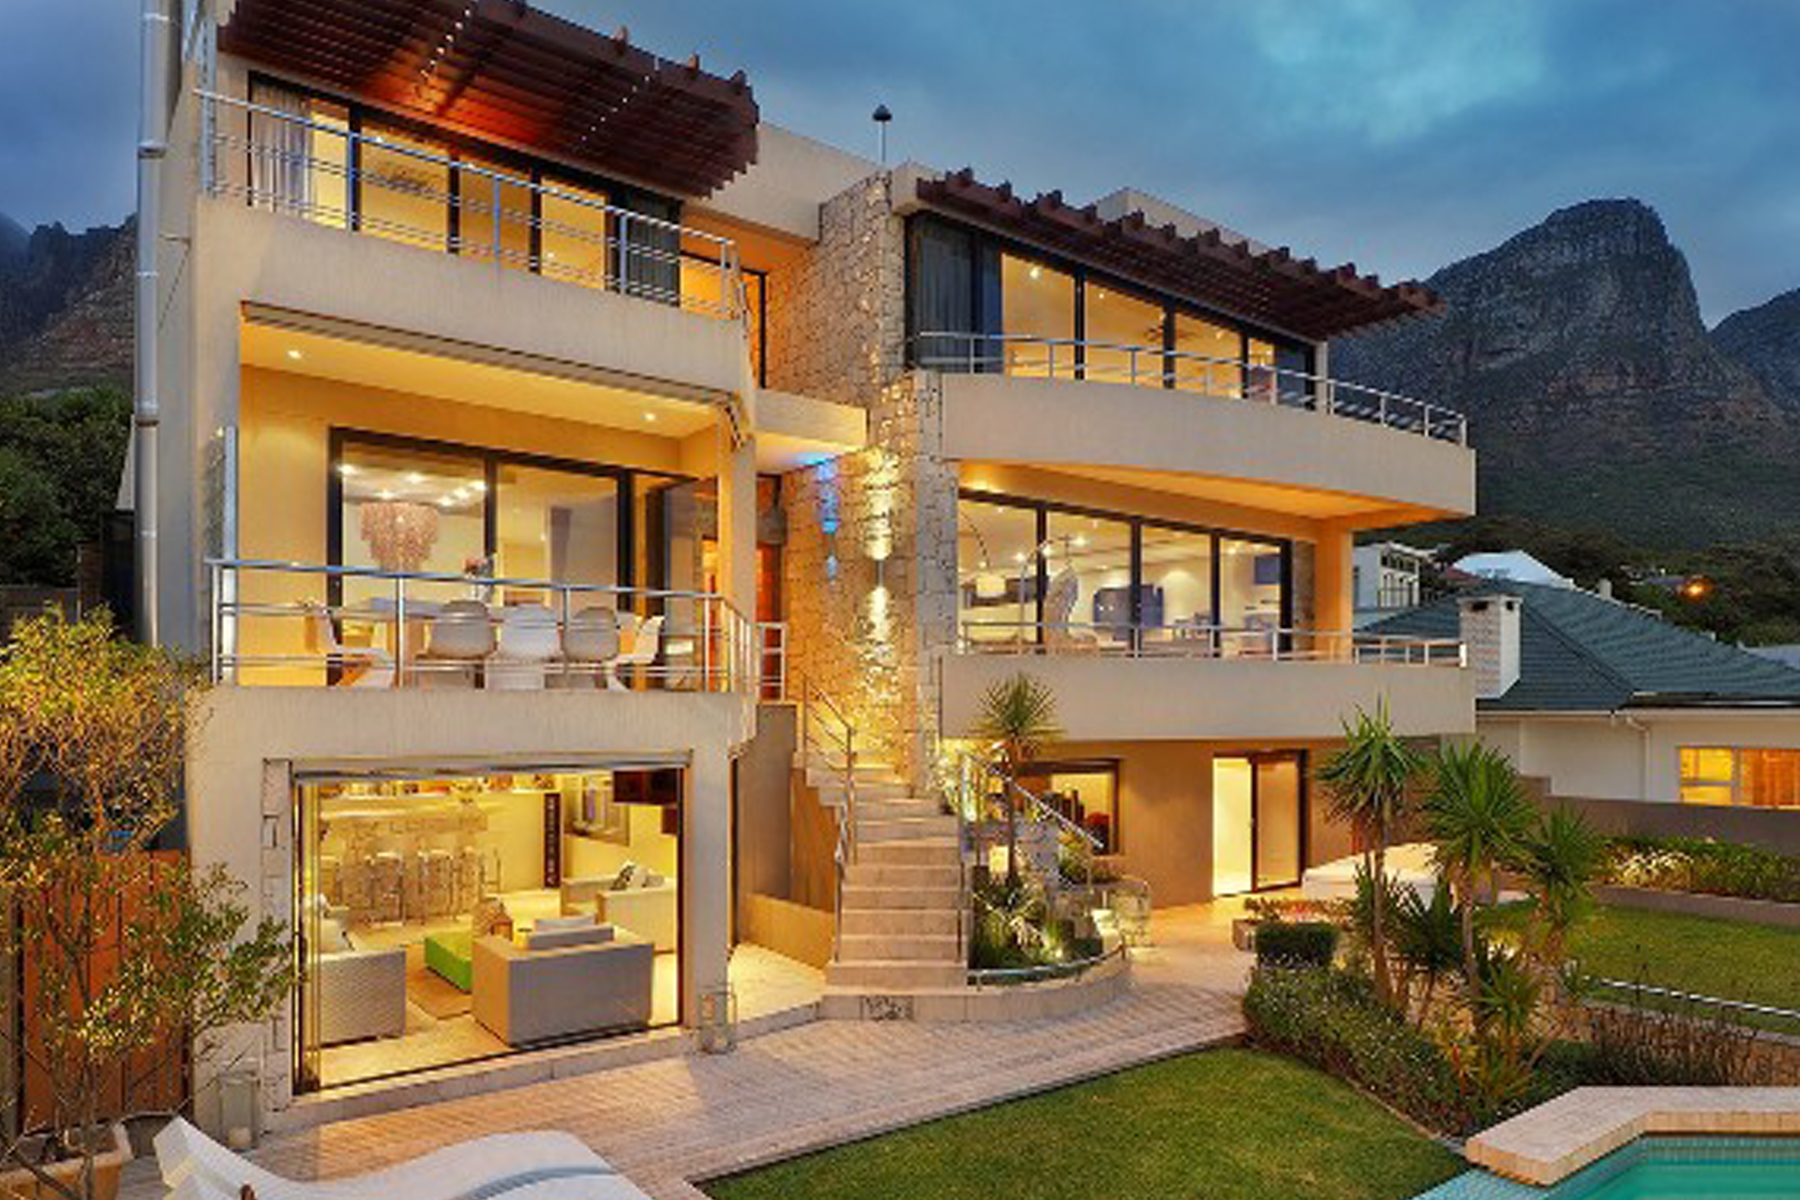 Single Family Home for Sale at Camps Bay Cape Town, Western Cape, 8005 South Africa